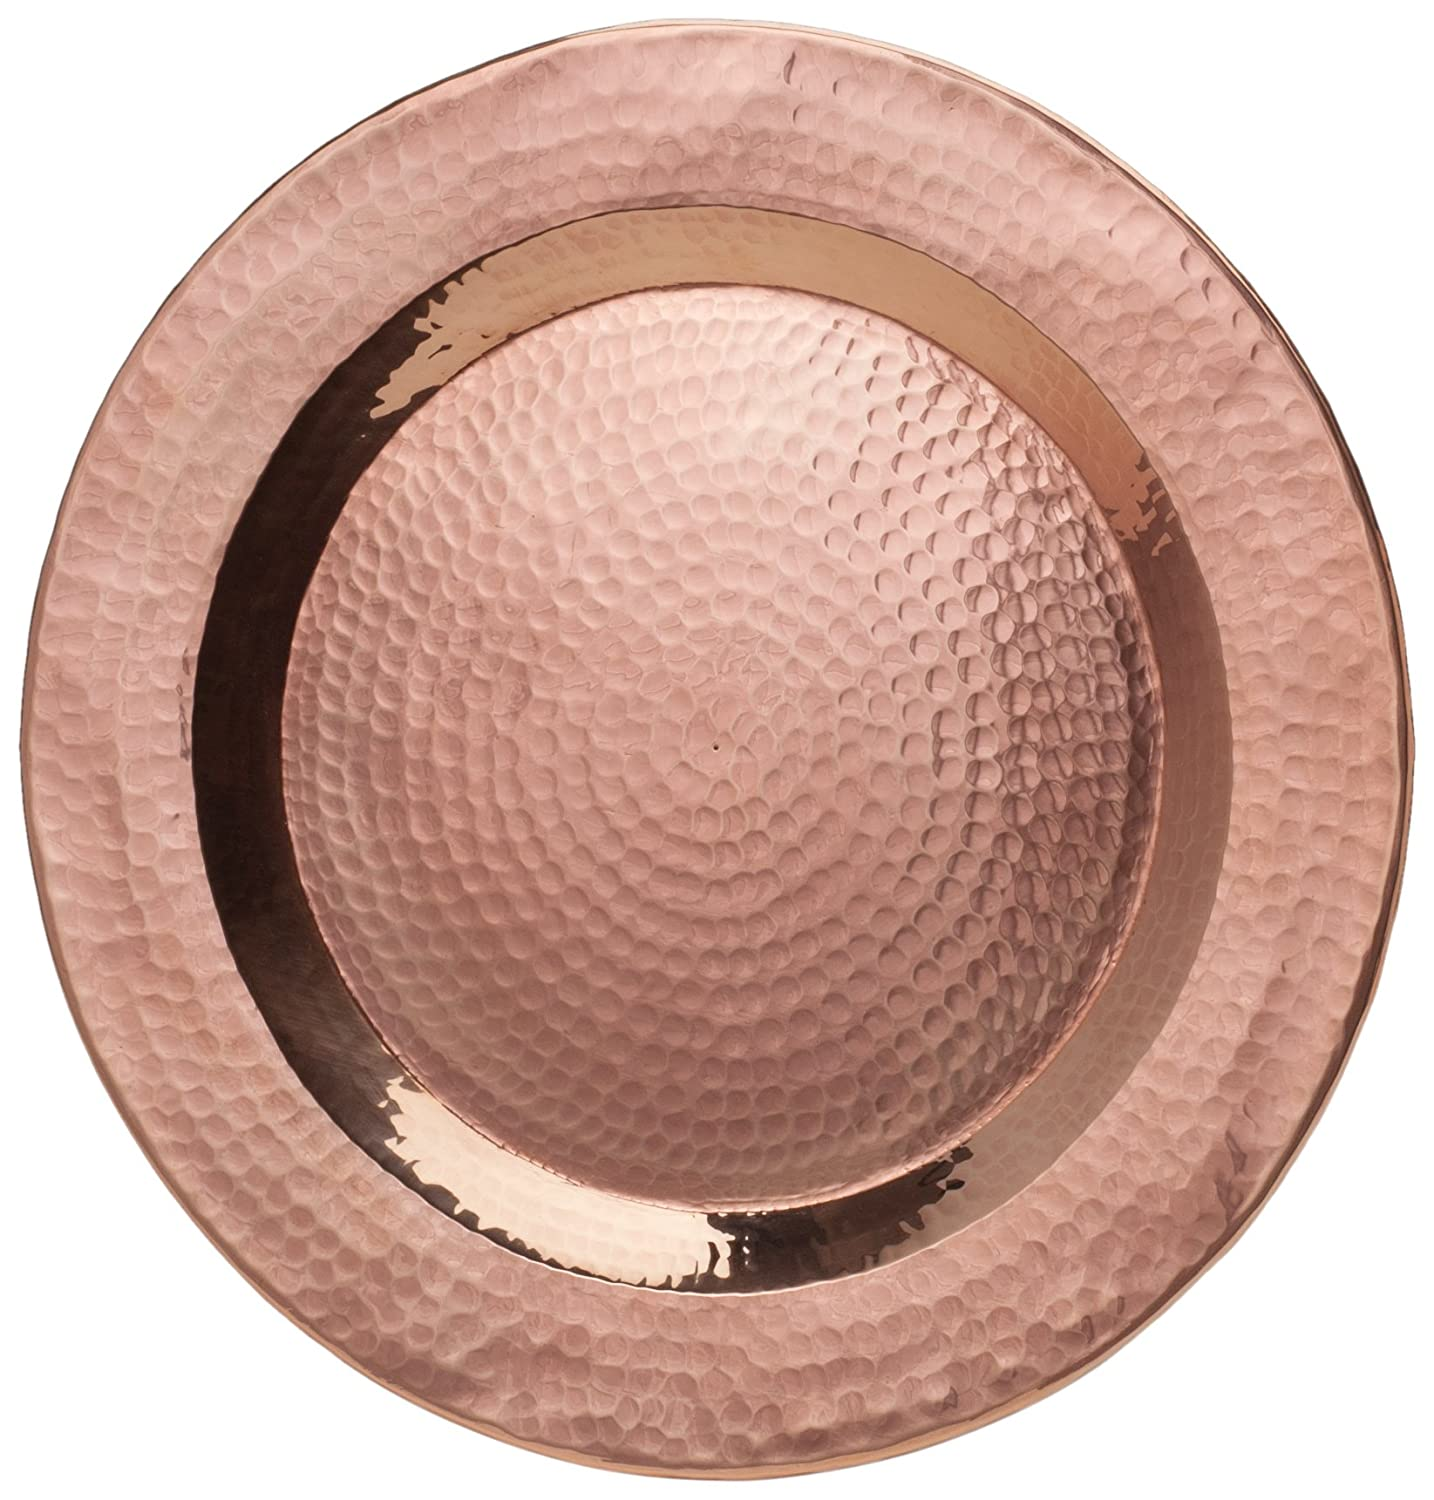 Amazon.com Sertodo Copper Hand Hammered 100% Pure Copper 12-inch Round Charger Plate Centerpiece Display Plate Copper Platter Kitchen \u0026 Dining  sc 1 st  Amazon.com & Amazon.com: Sertodo Copper Hand Hammered 100% Pure Copper 12-inch ...